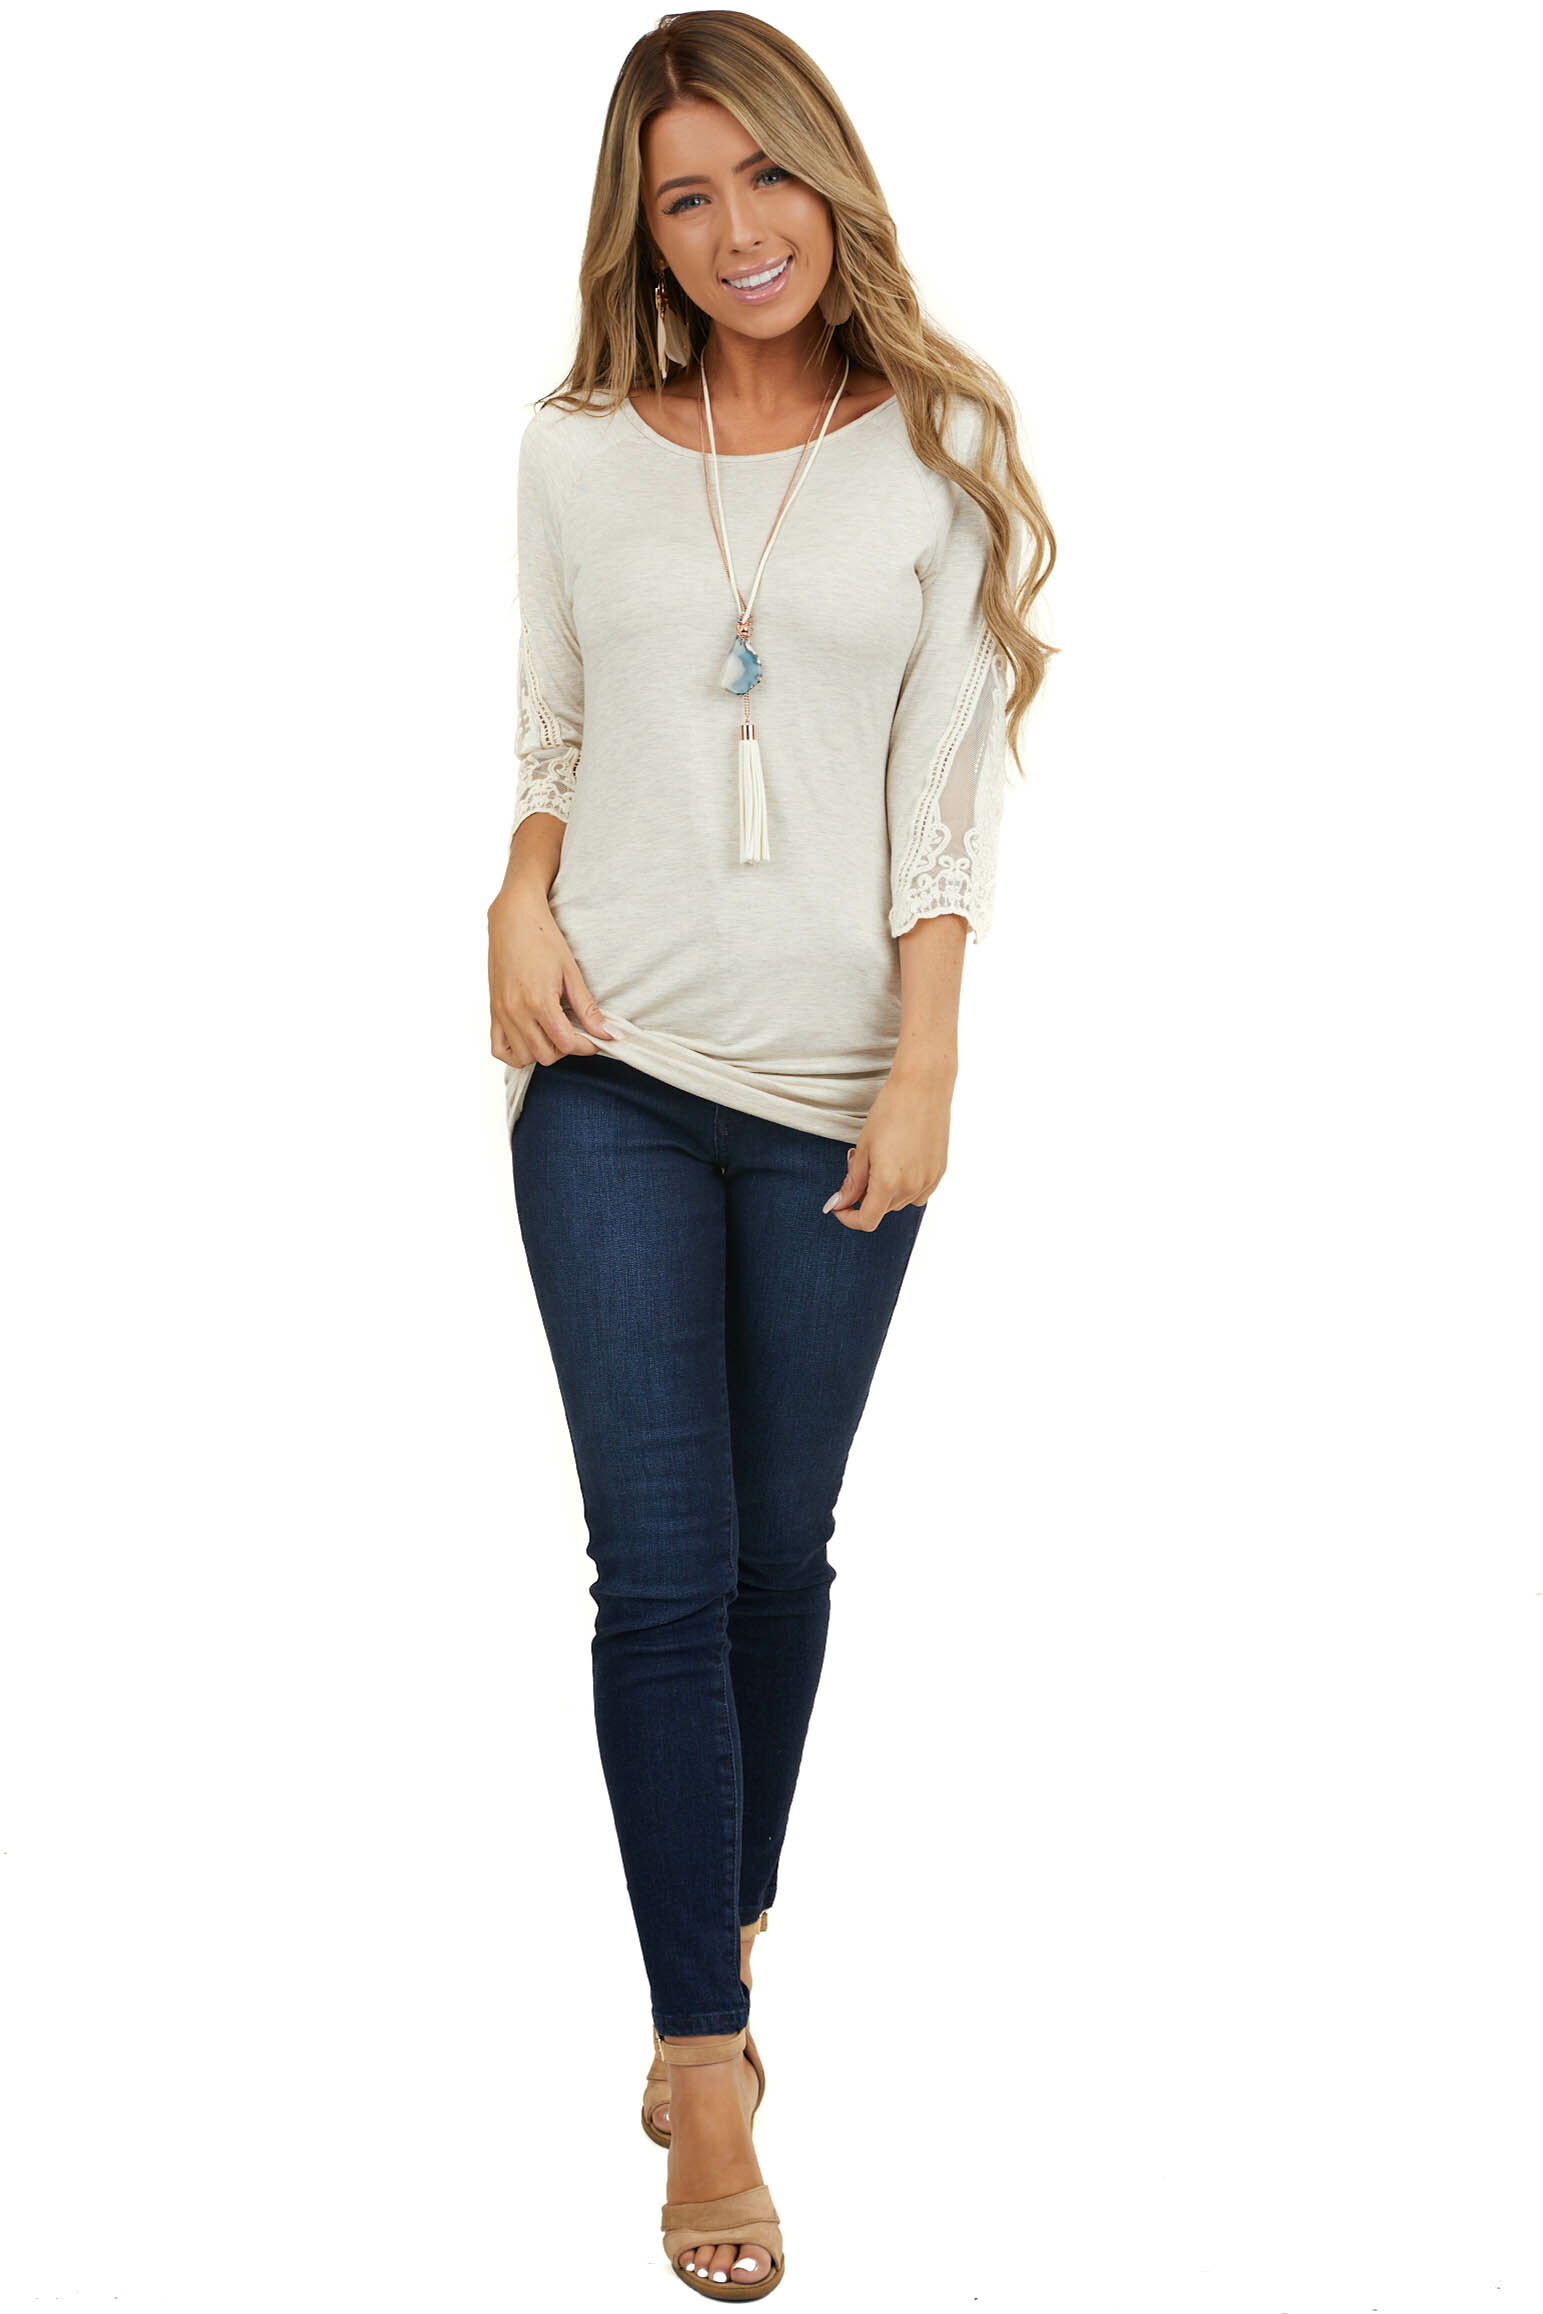 Oatmeal Lace 3/4 Sleeve Knit Top with Cinched Side Details